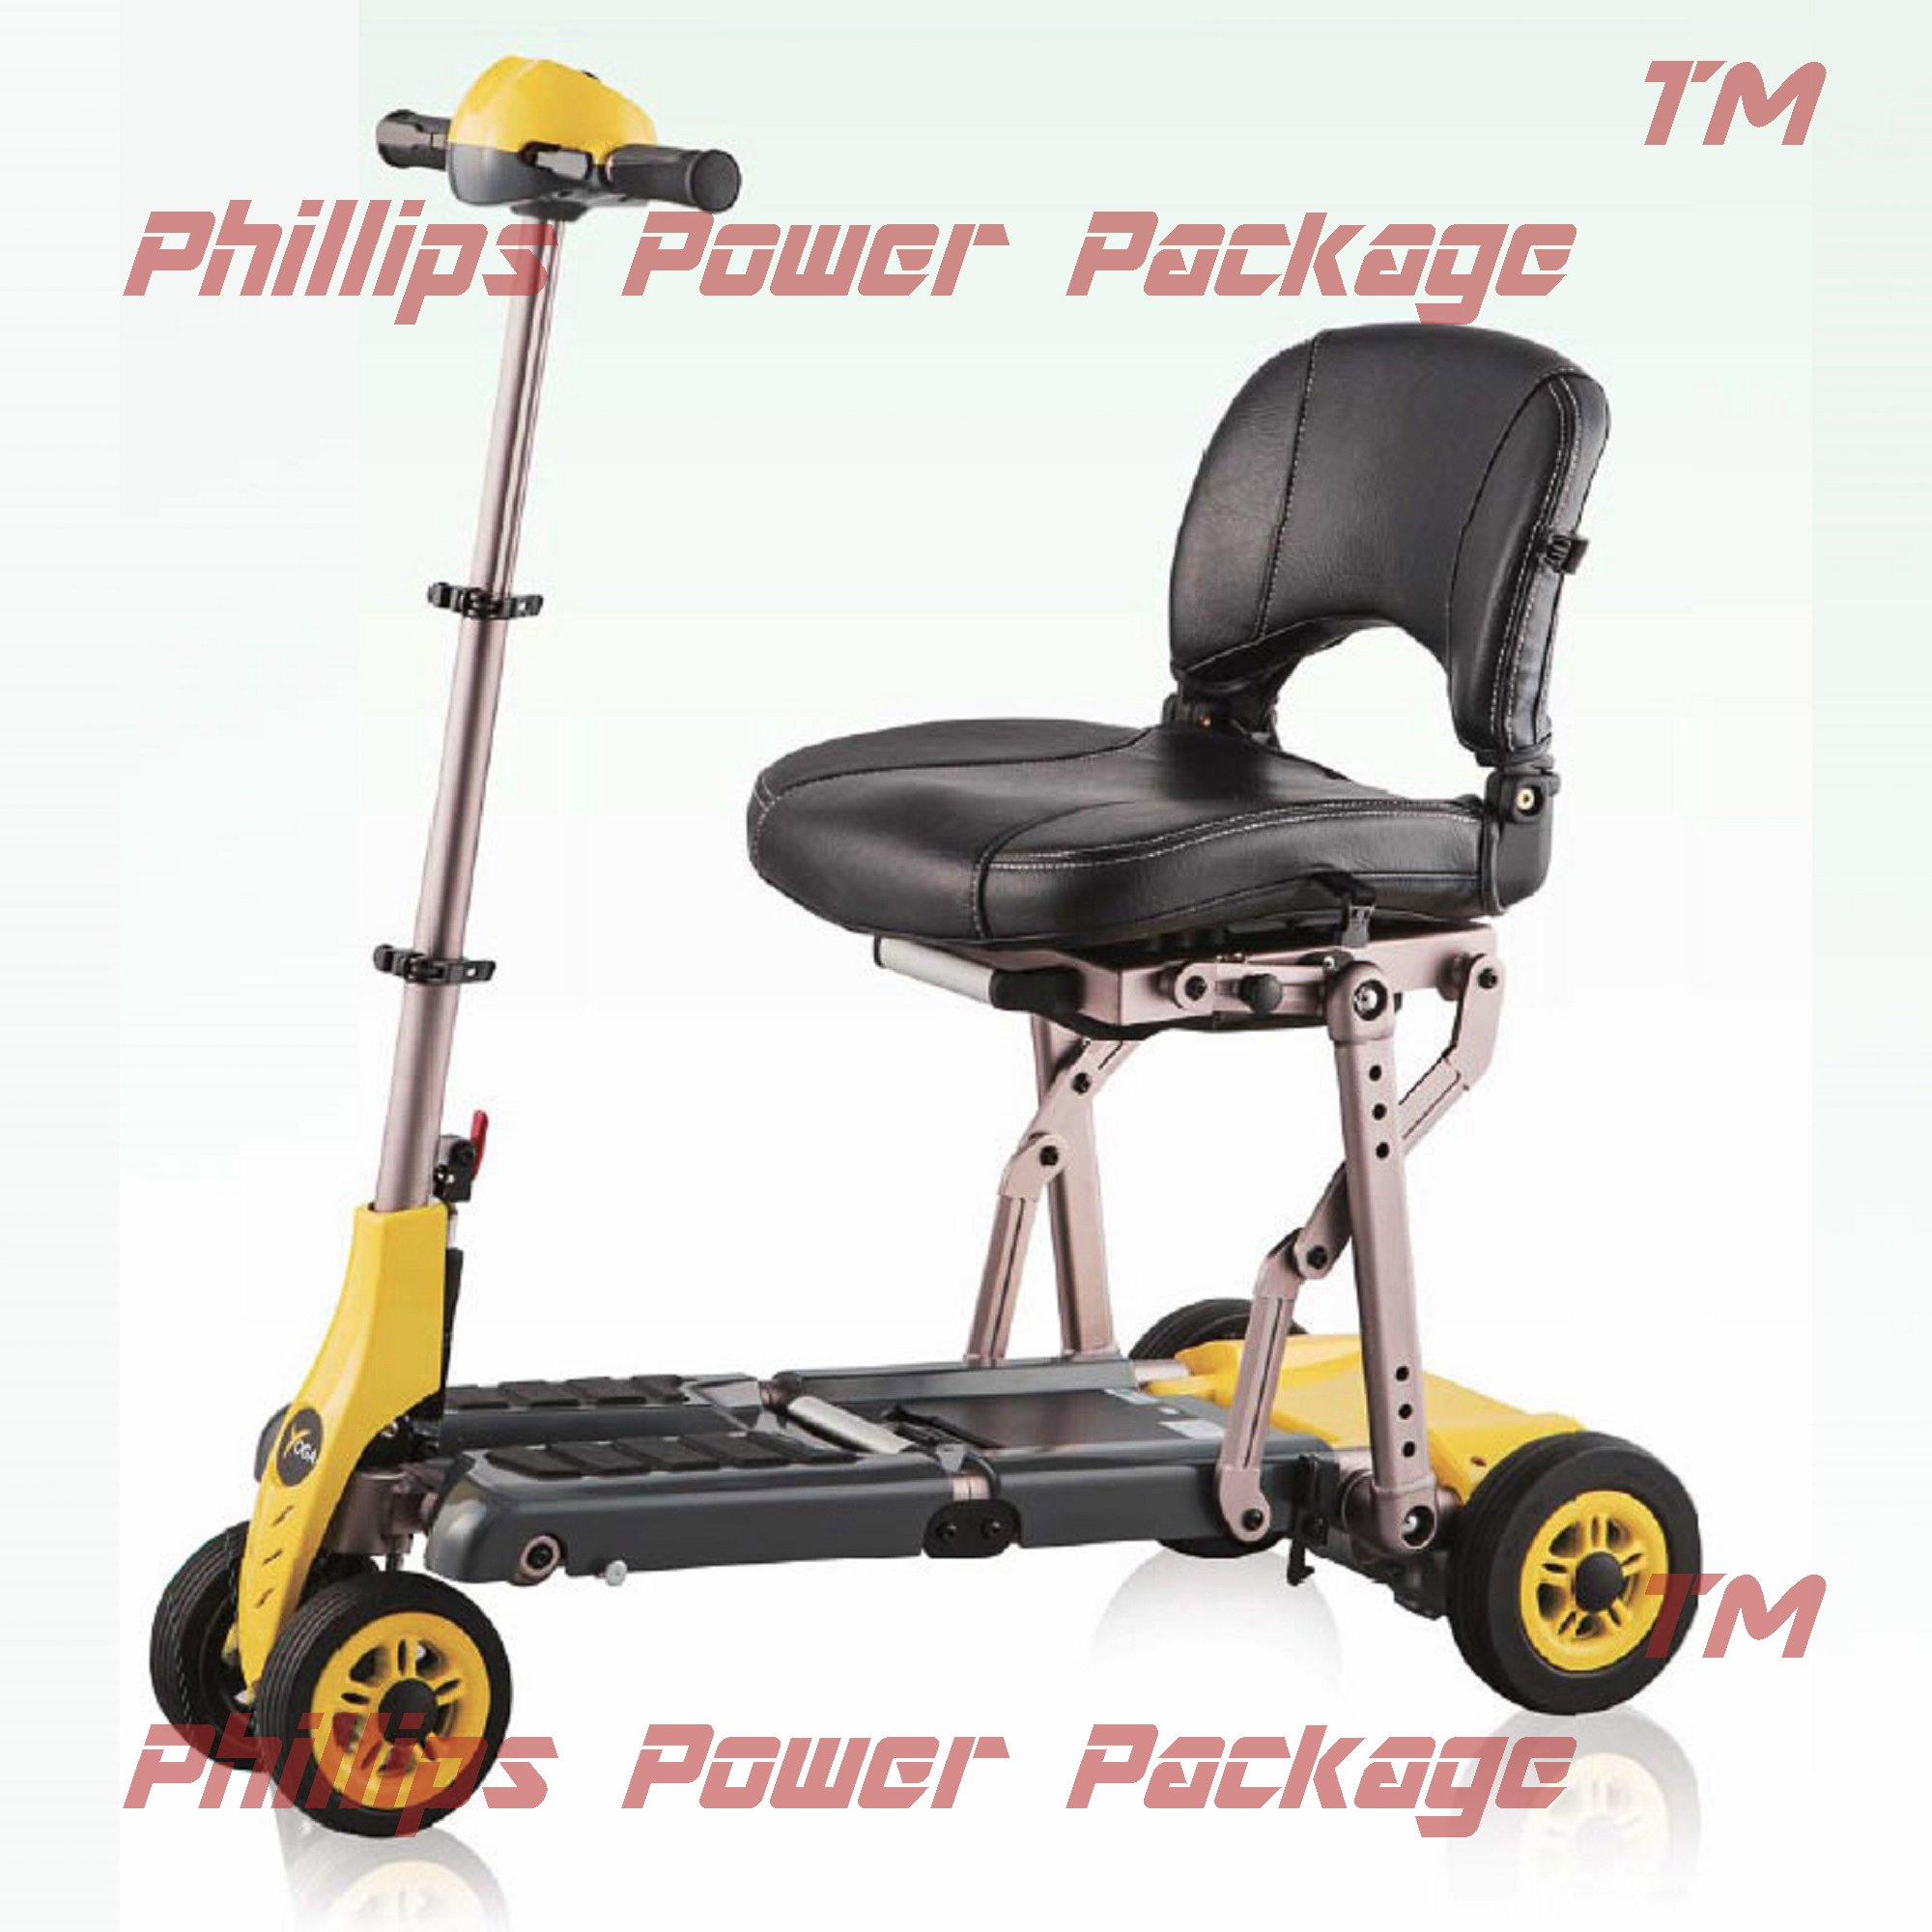 Merits Health Products - Yoga - 4-Wheel Portable Folding Scooter - 16''W x 14''D - Yellow - PHILLIPS POWER PACKAGE TM - TO $500 VALUE